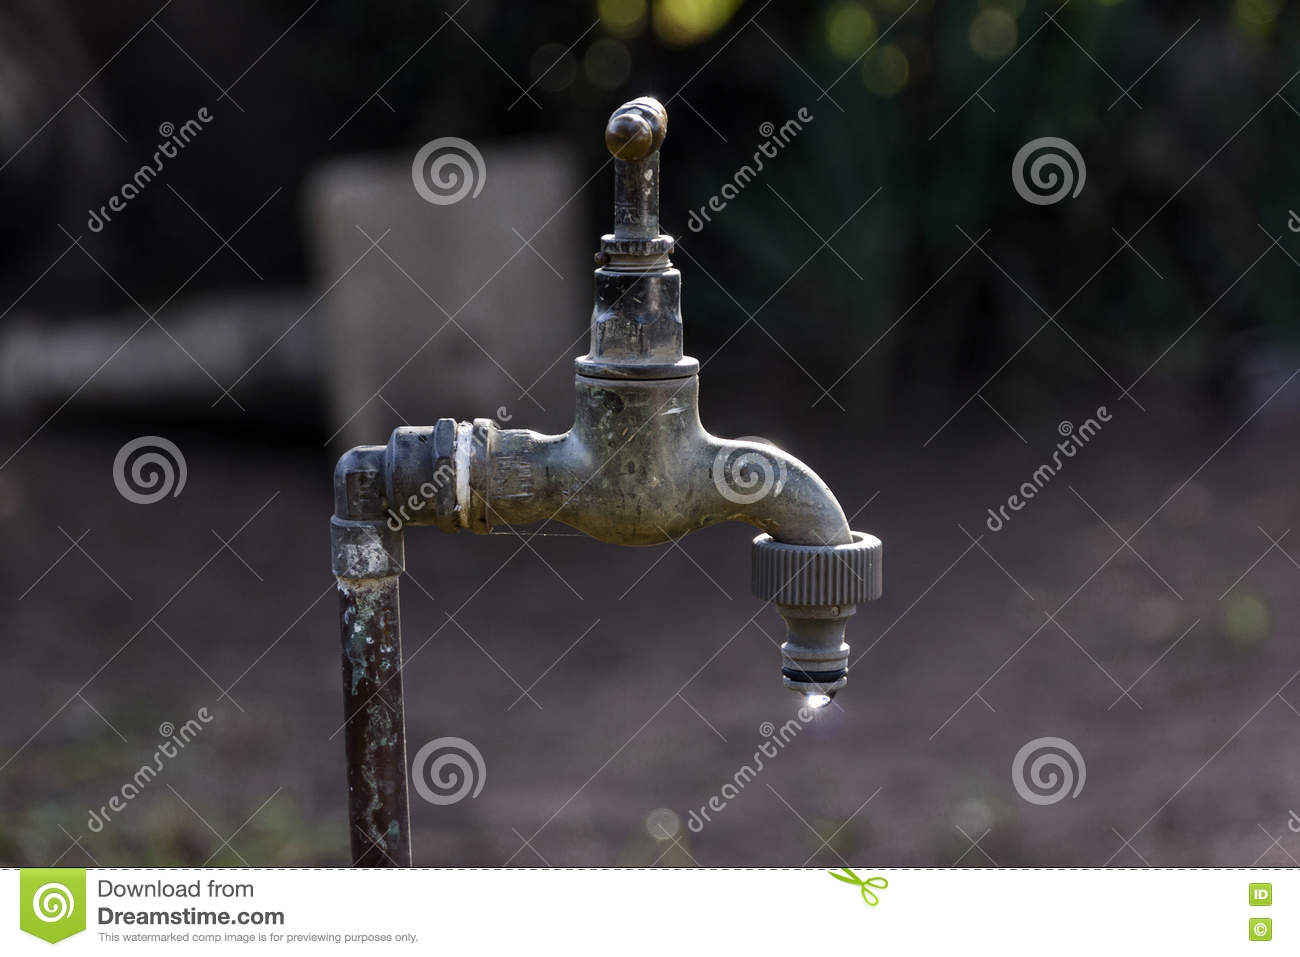 Old Leaking Garden Faucet In Garden Setting Stock Image - Image of ...